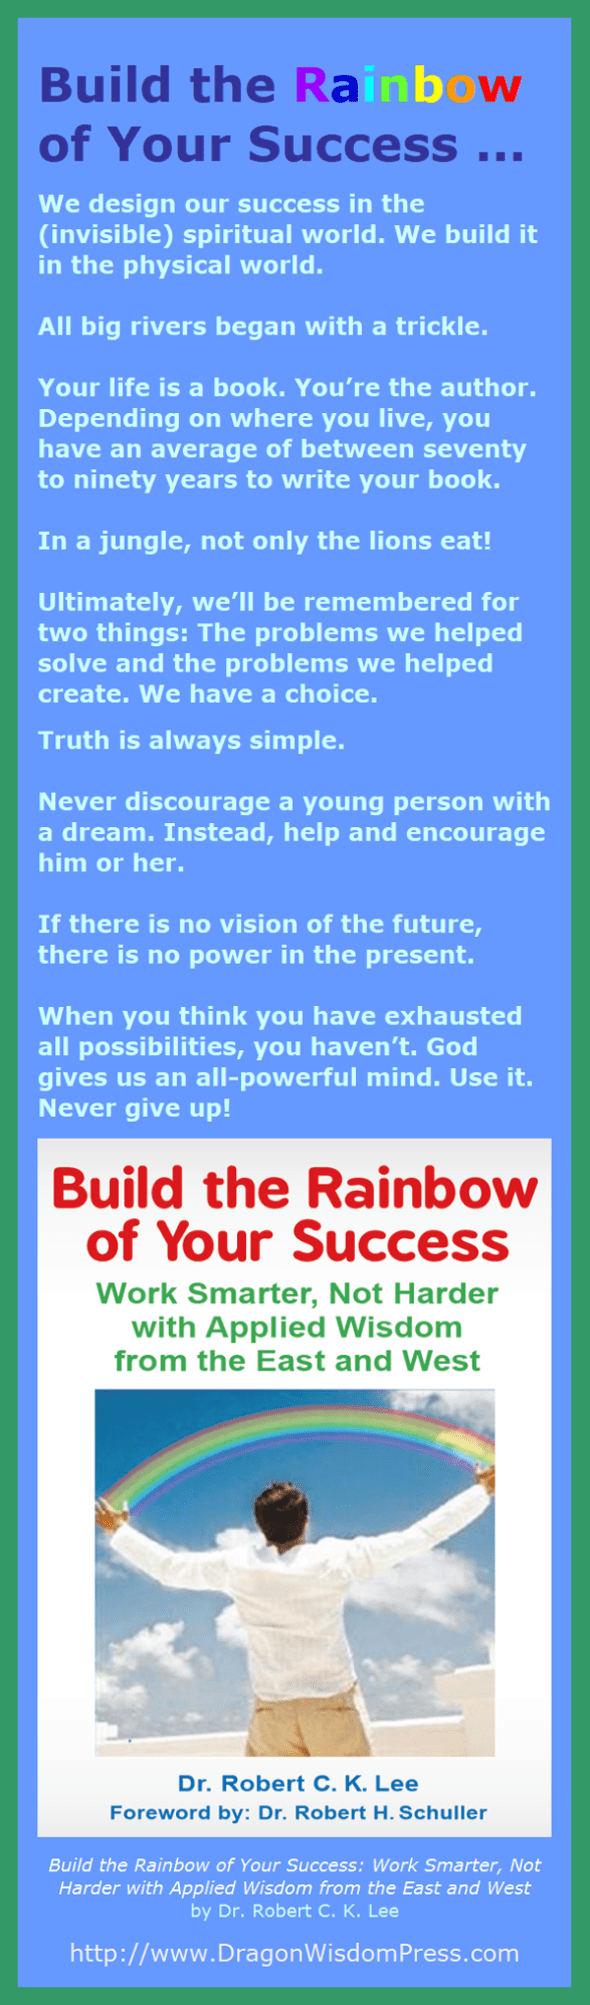 Build the Rainbow of Your Success